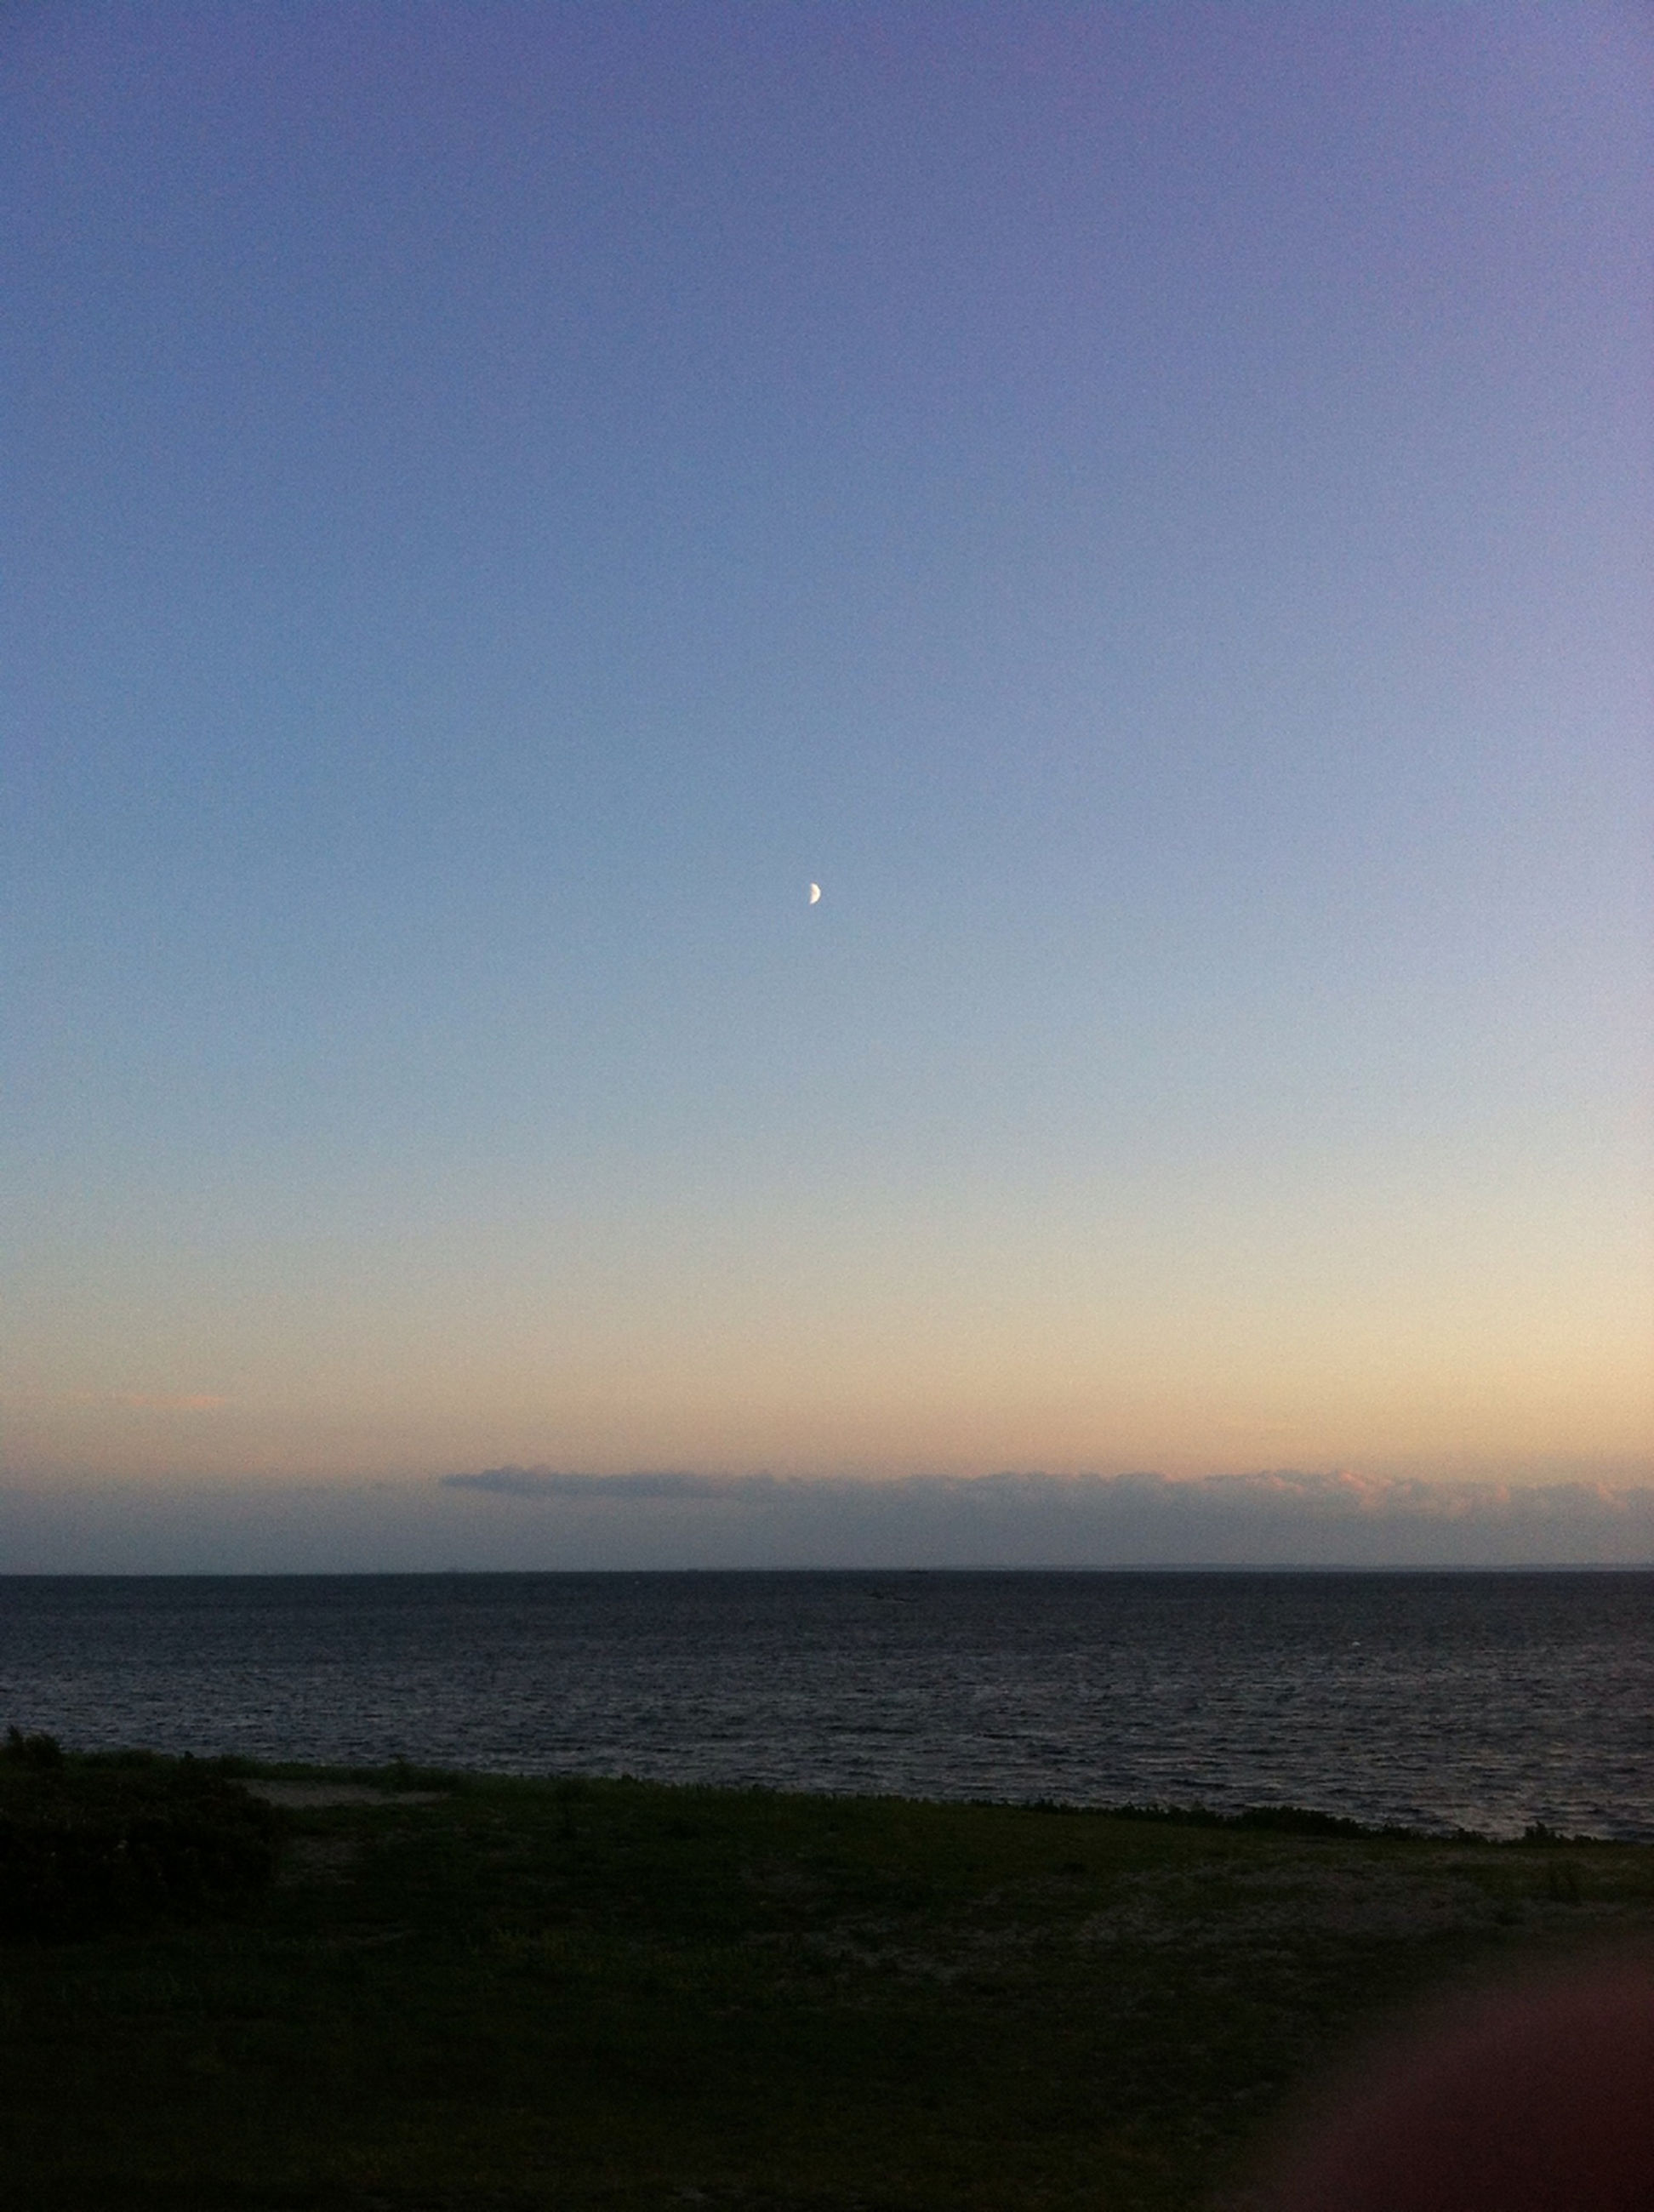 sea, horizon over water, clear sky, copy space, water, scenics, tranquil scene, beach, tranquility, beauty in nature, nature, shore, idyllic, blue, sunset, remote, outdoors, sky, coastline, dusk